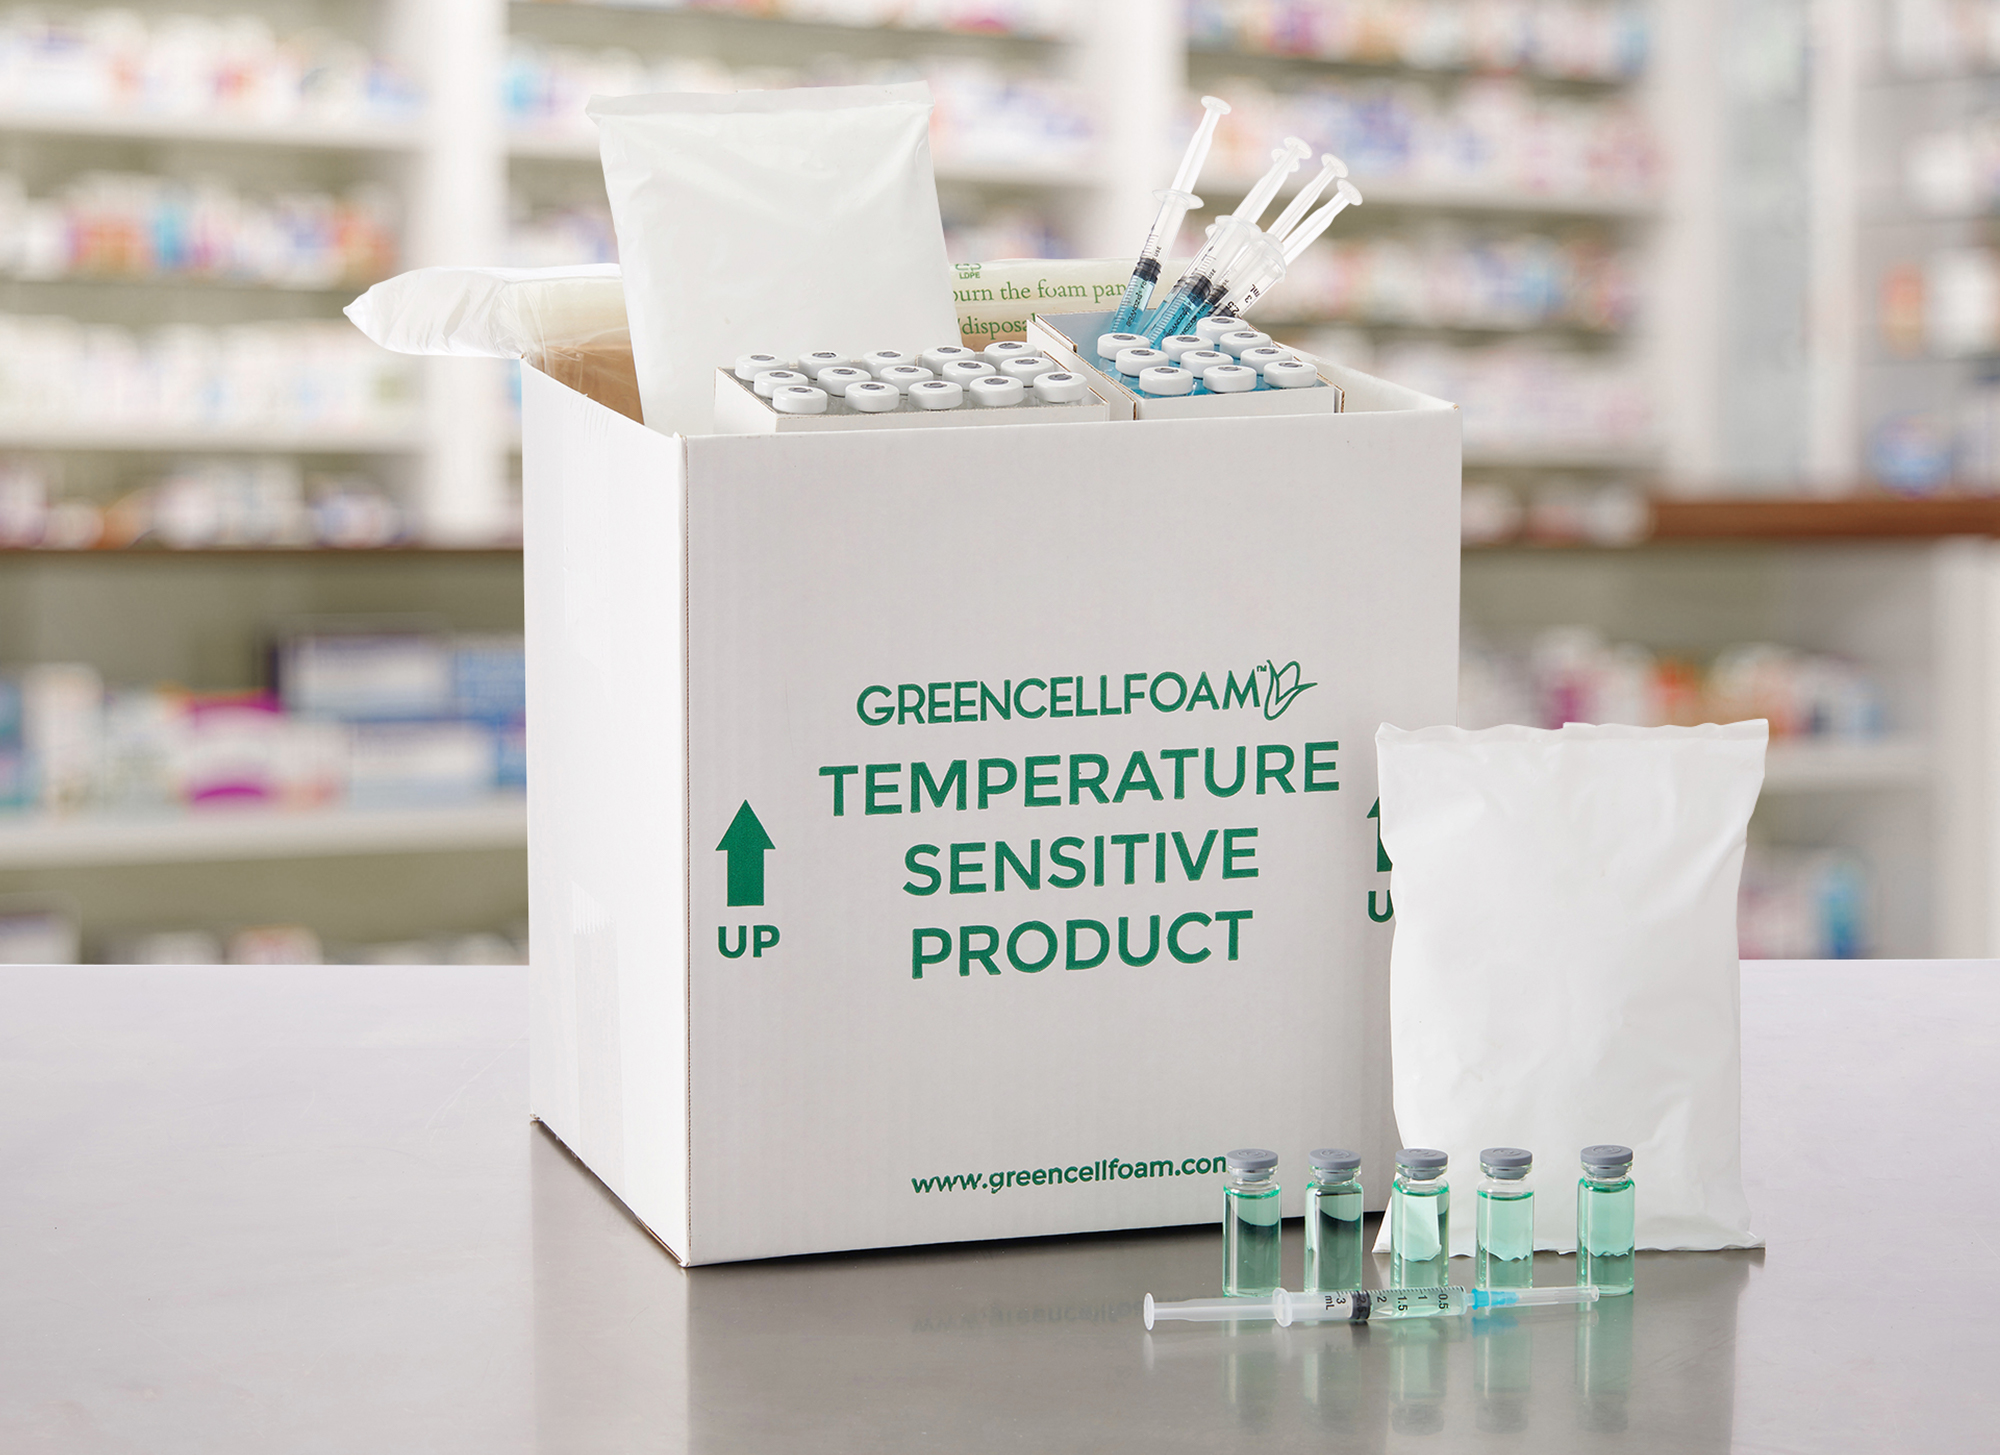 Cold Chain Solution for Life Sciences